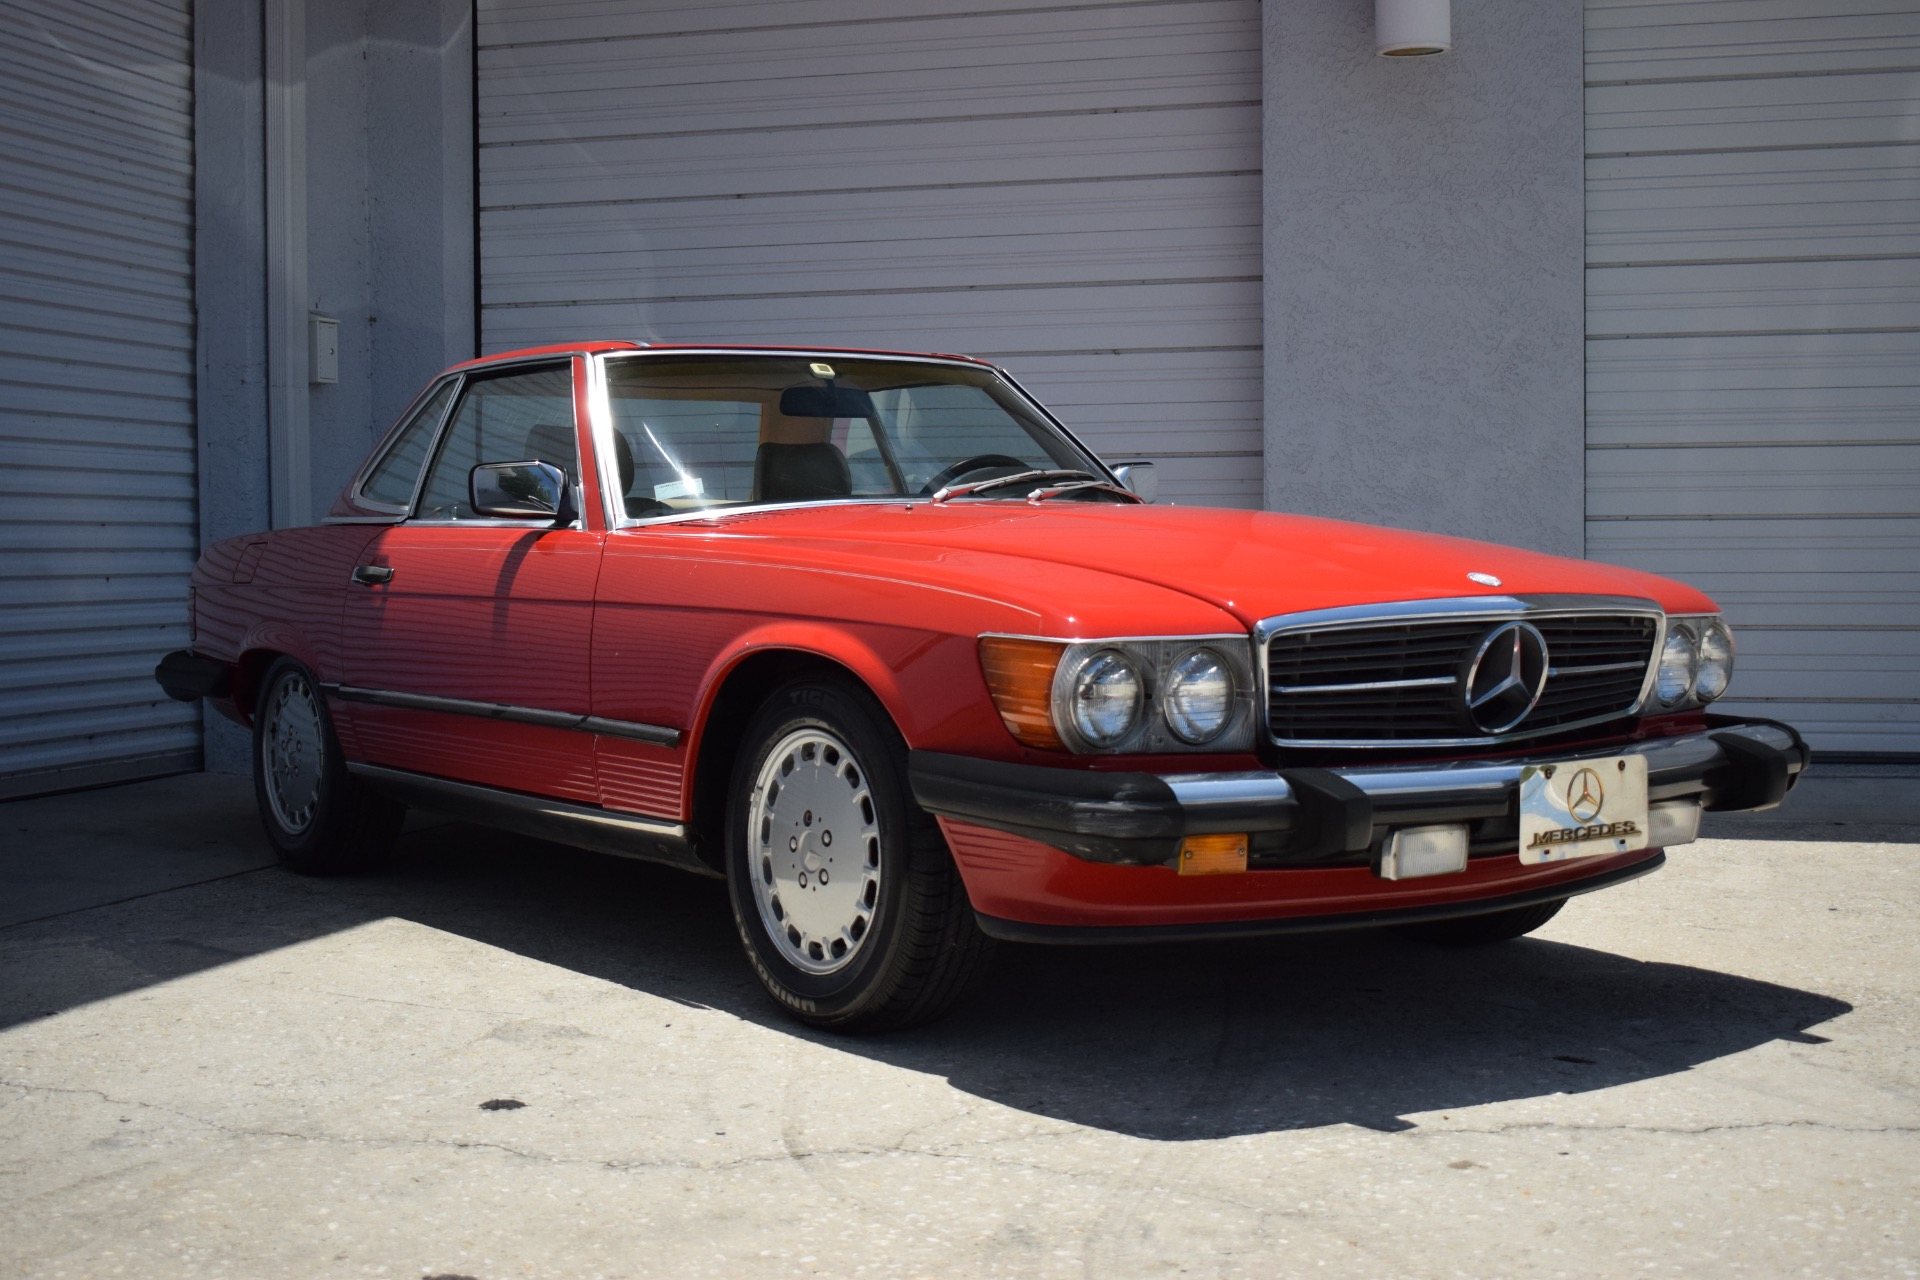 Used 1986 Mercedes-Benz 560 SL Cabrio for sale $14,997 at Track and Field Motors in Safety Harbor FL 34695 1